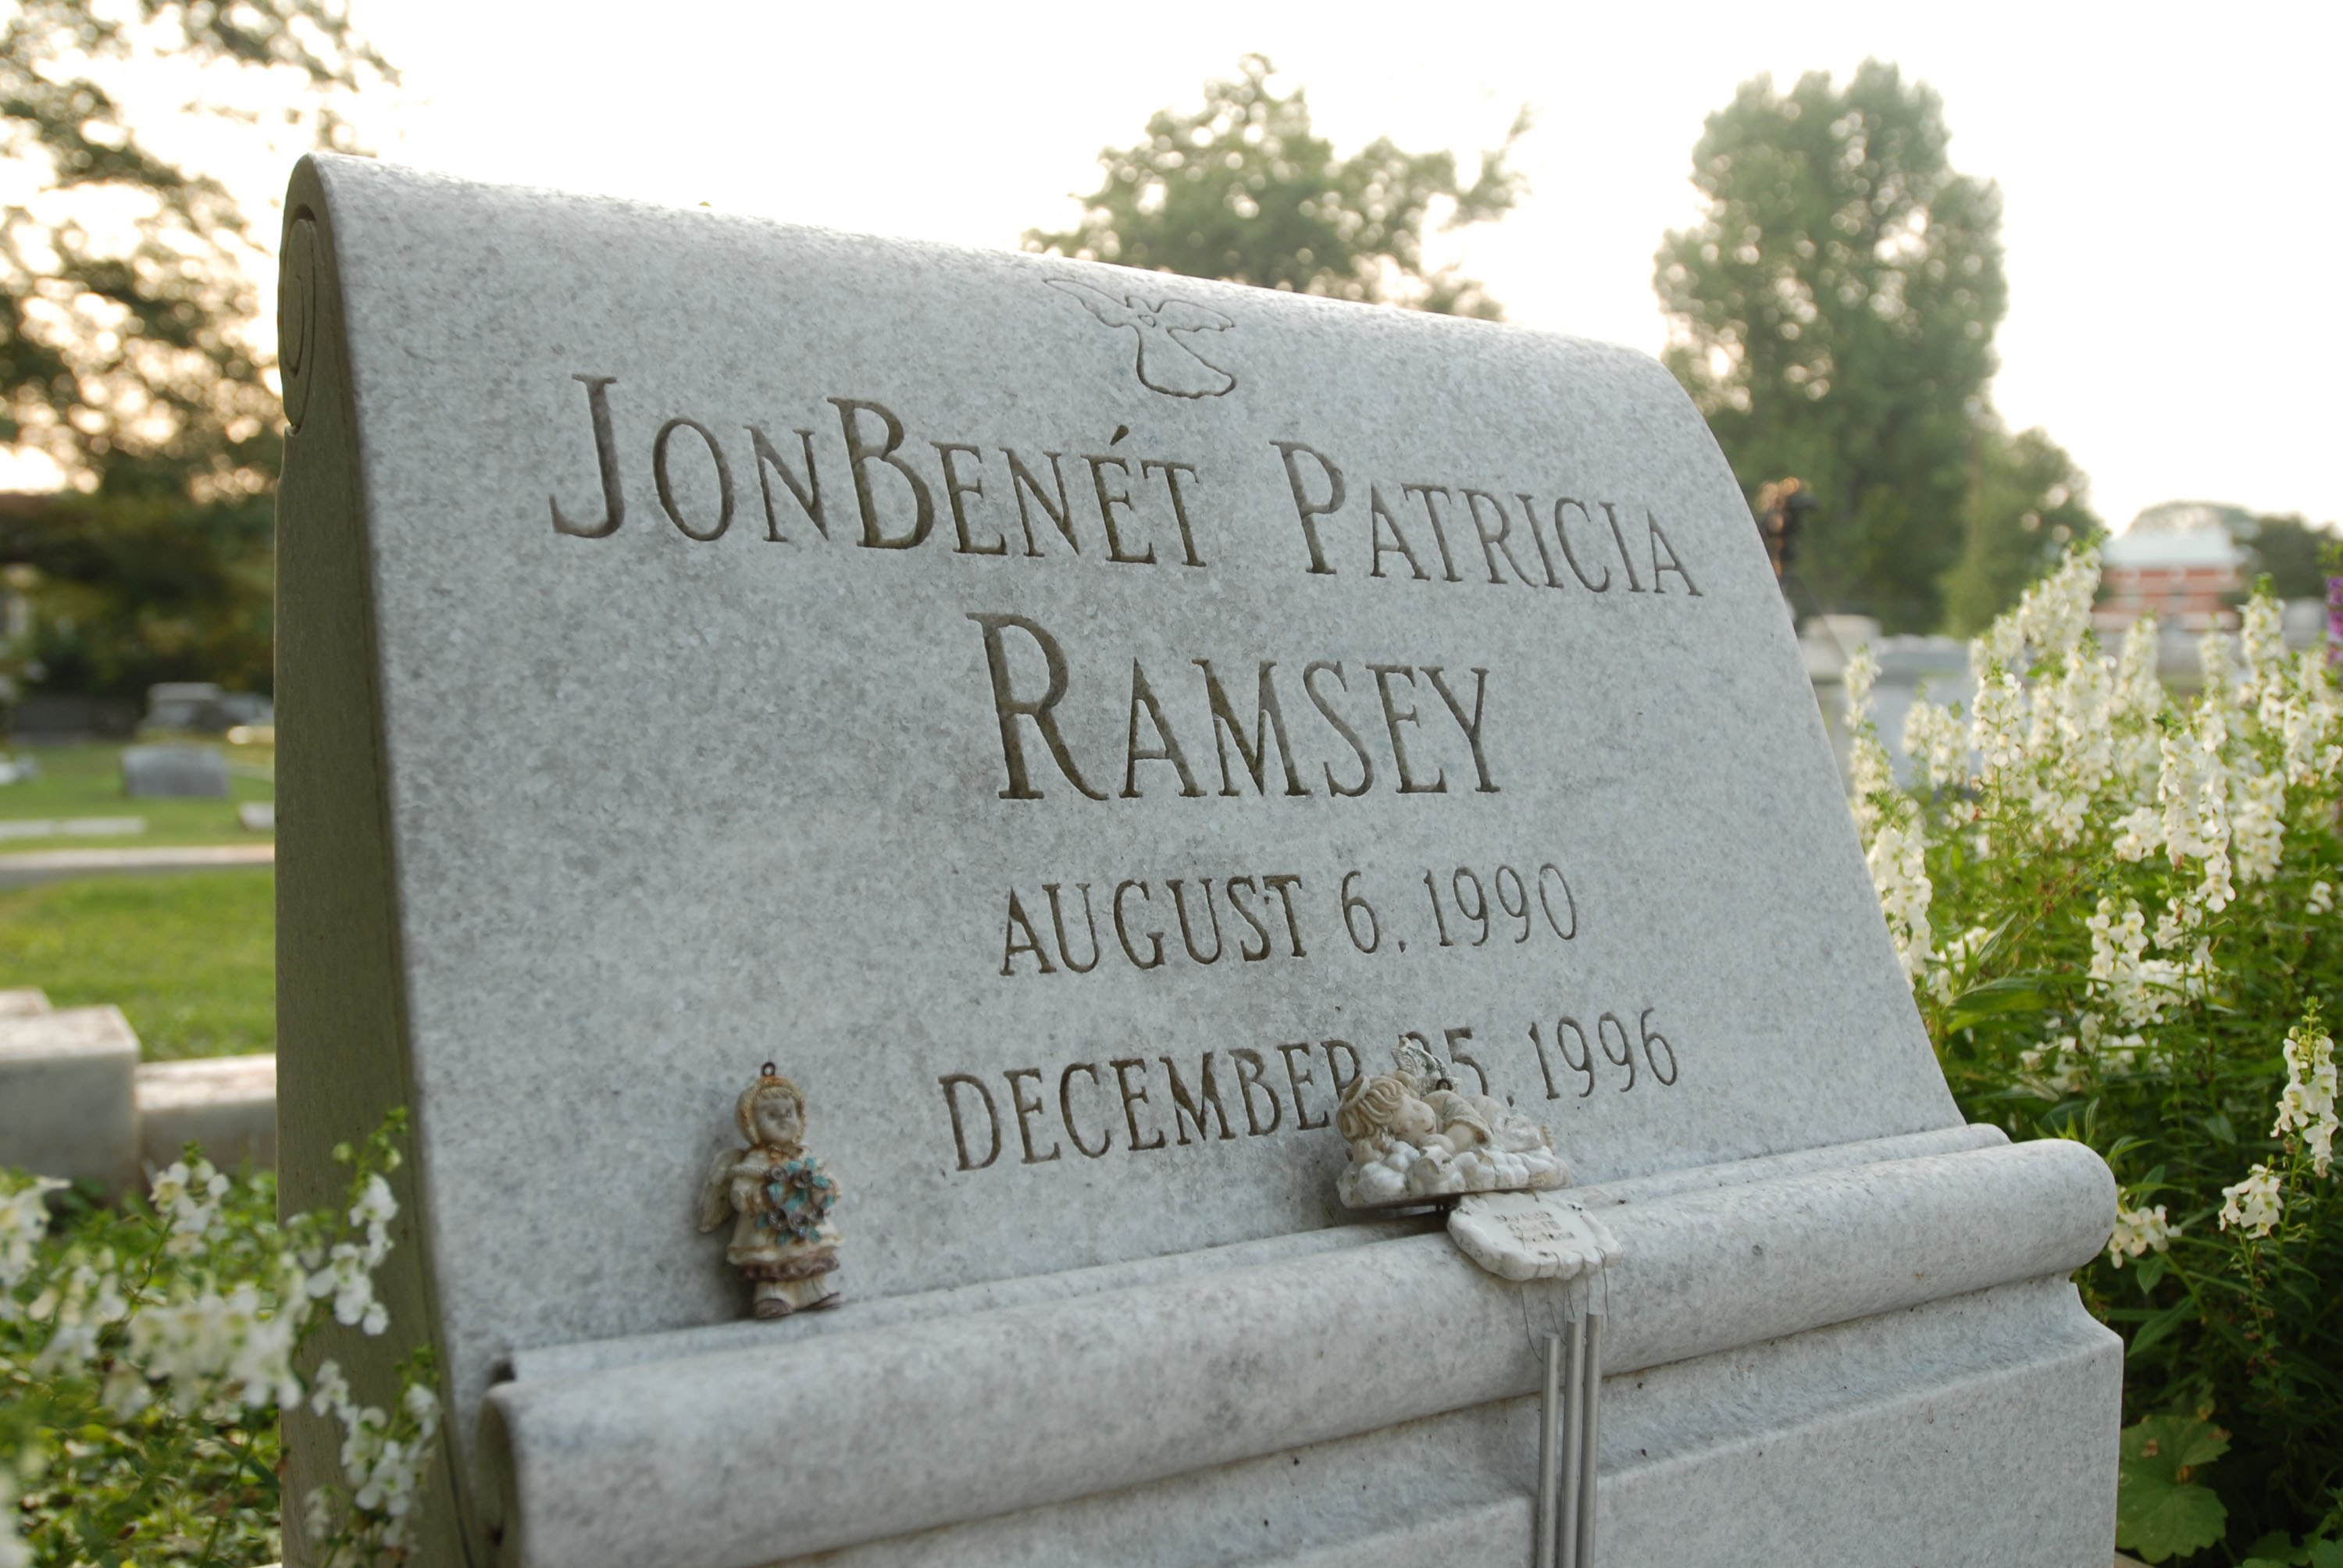 The grave of JonBenet Ramsey. (credit: Barry Williams/Getty Images)